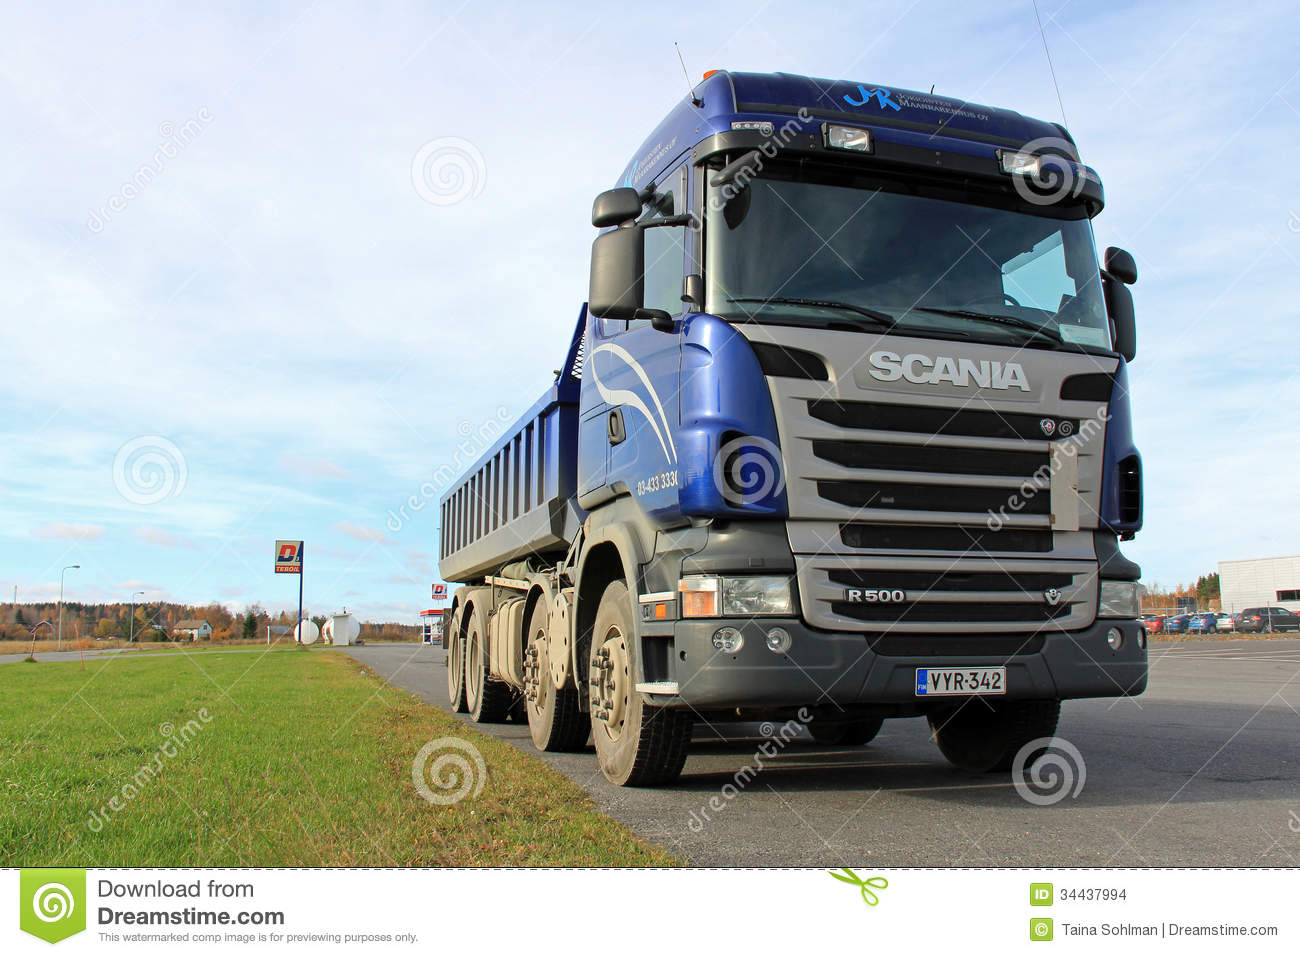 Construction Heavy Equipment Trailers Crawler Dozers Loaders together with Monthly Maintenance Report Template S le furthermore Garden Cart Wheels together with Manac Flatbed Fertilizer Trailer V 1 0 together with ajrsignsandgraphics. on semi truck landscape